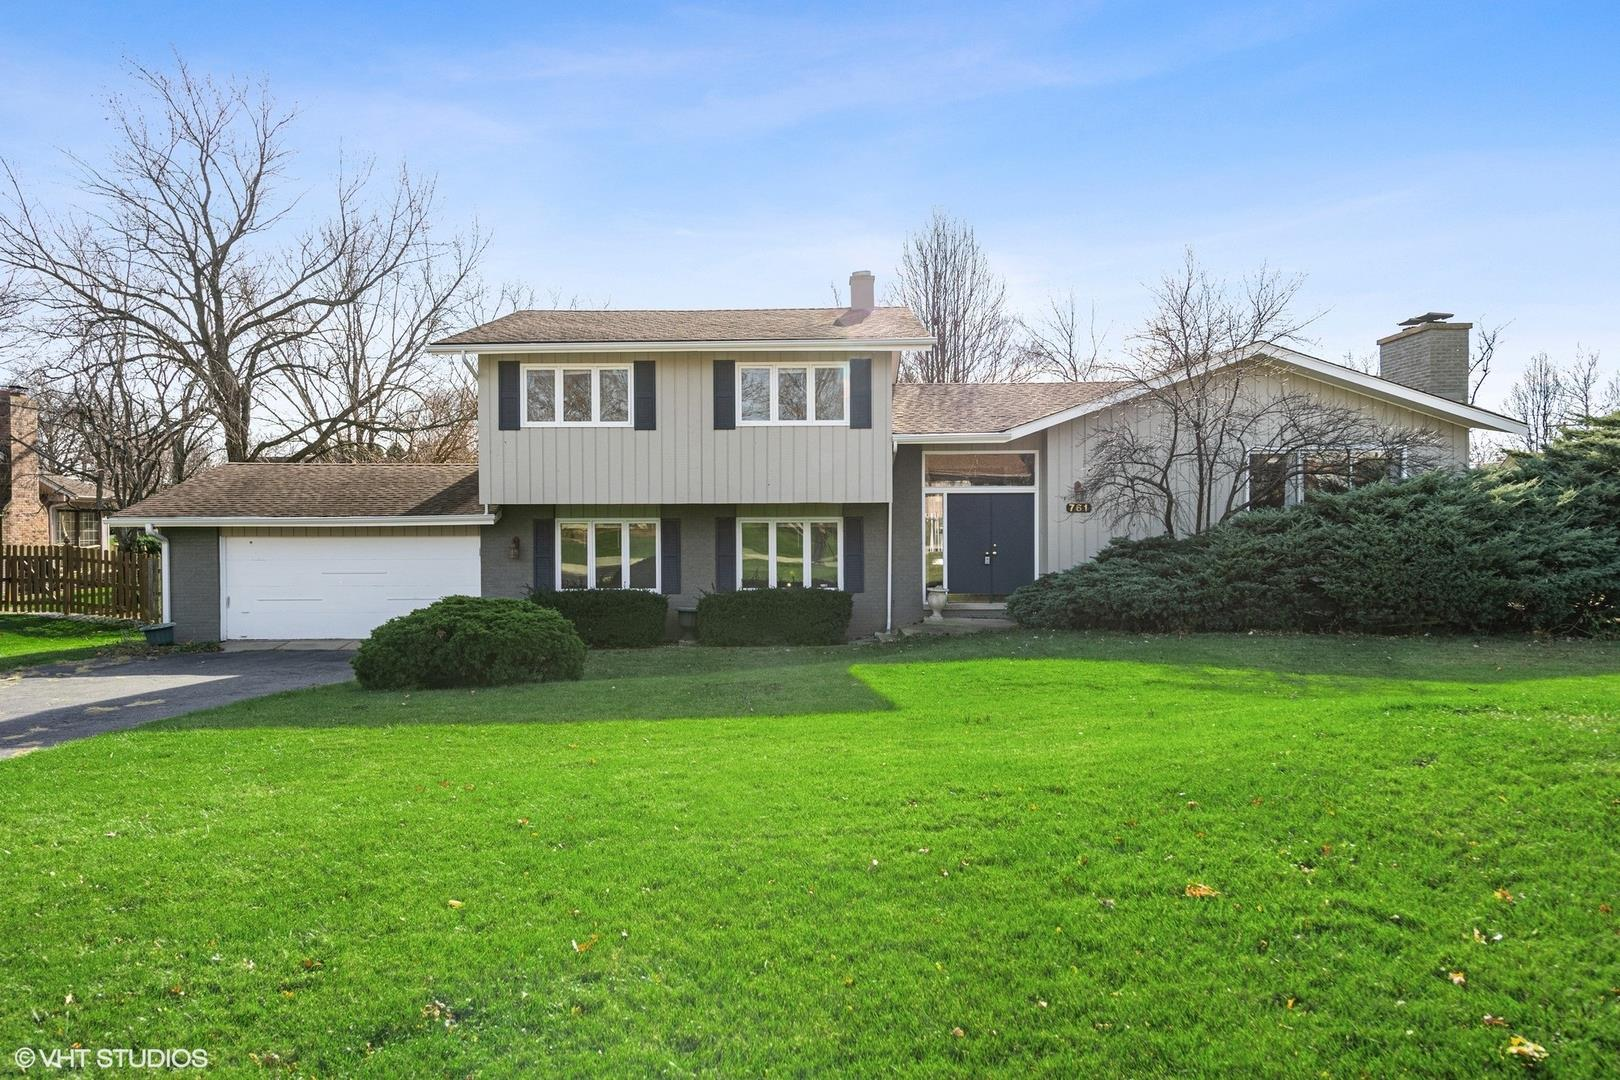 21W761 Dorchester Court, Glen Ellyn, IL 60137 - #: 10938250